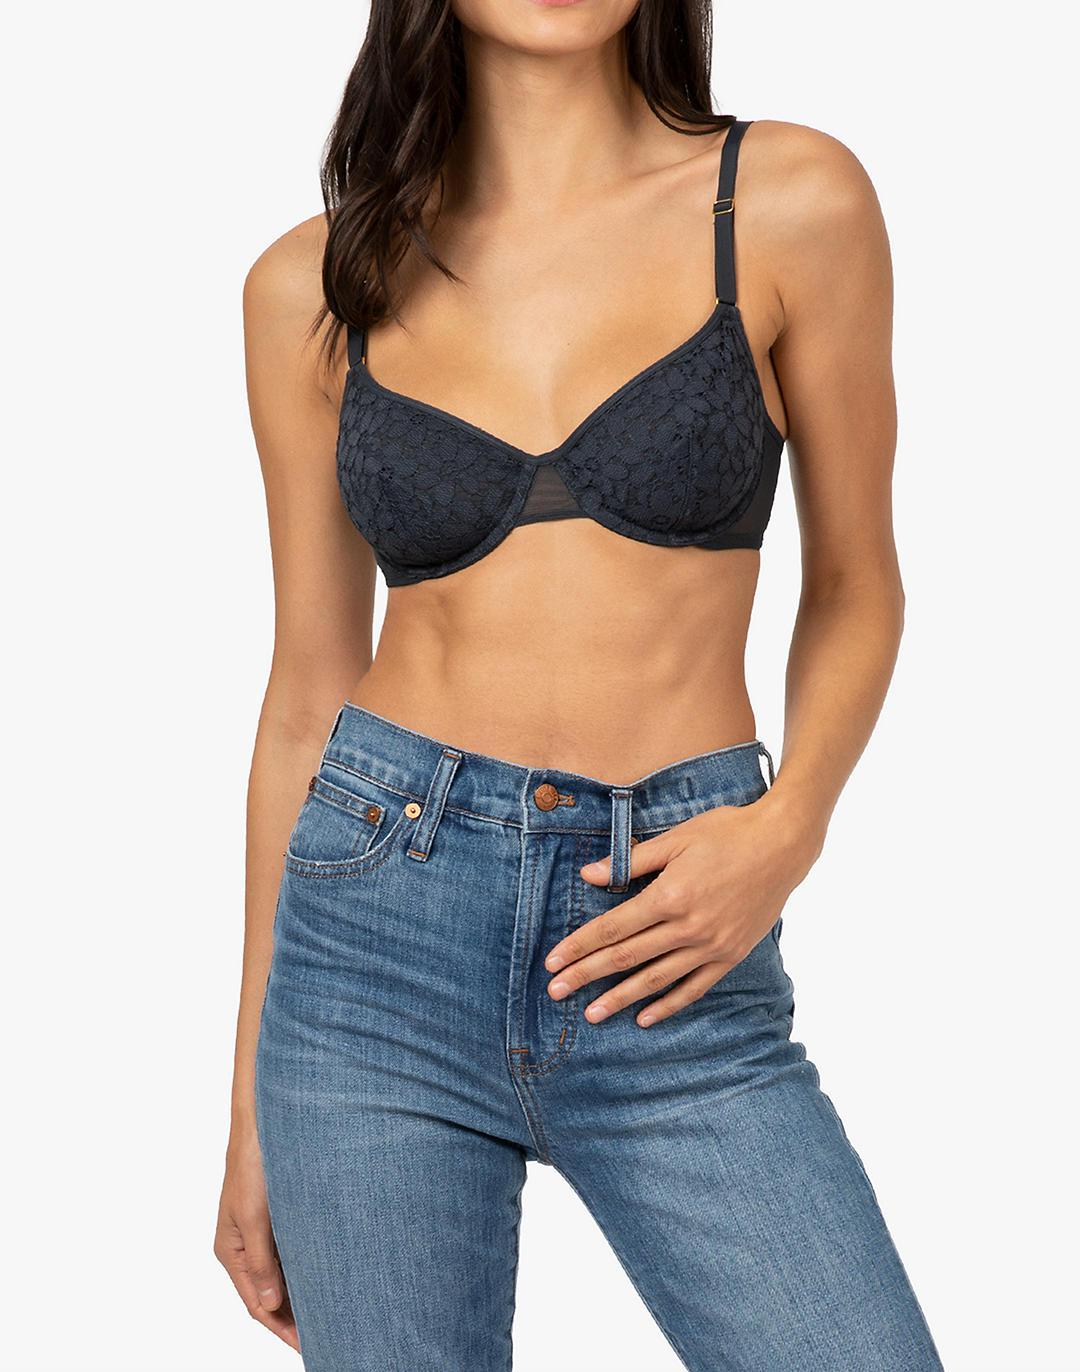 LIVELY The Floral Lace Balconette Bra